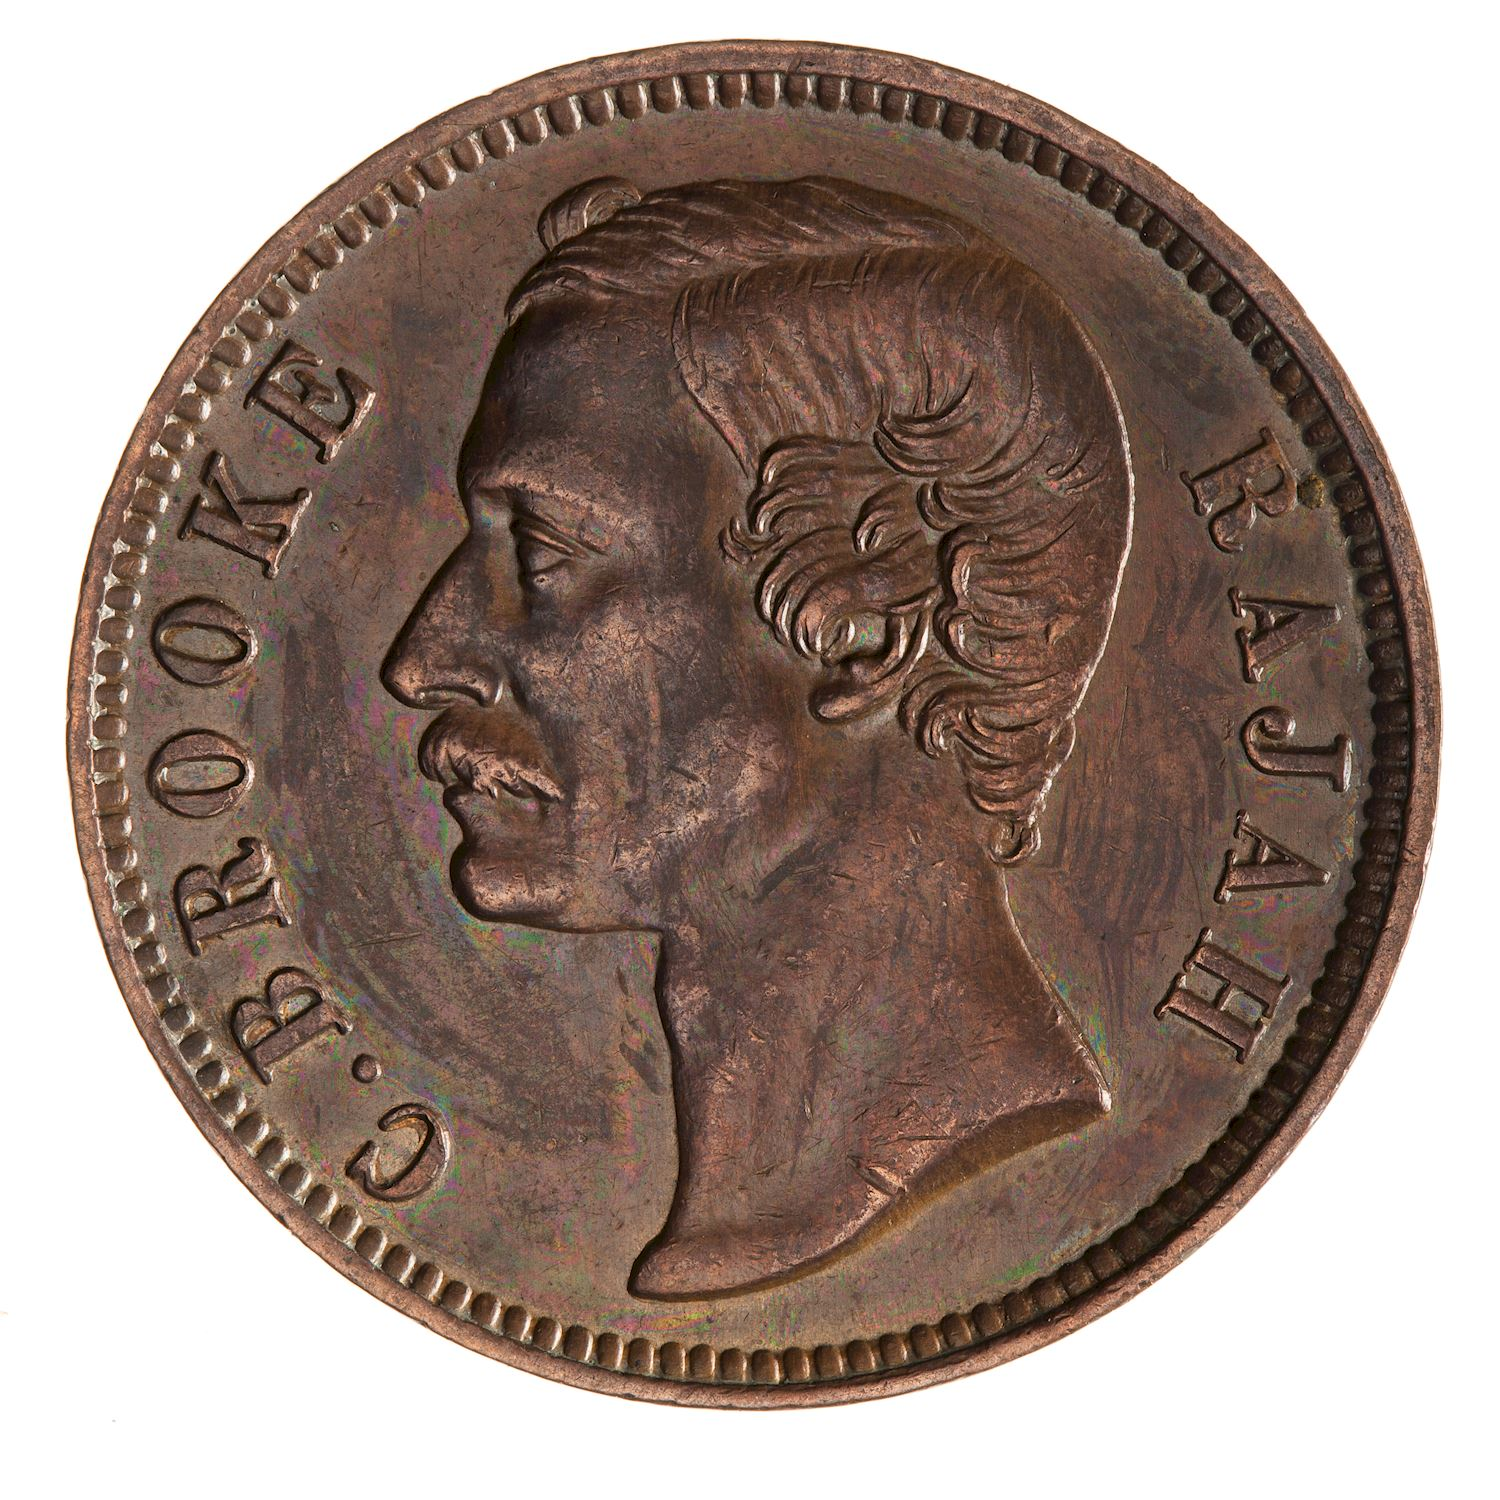 One Cent 1889: Photo Coin - 1 Cent, Sarawak, 1889